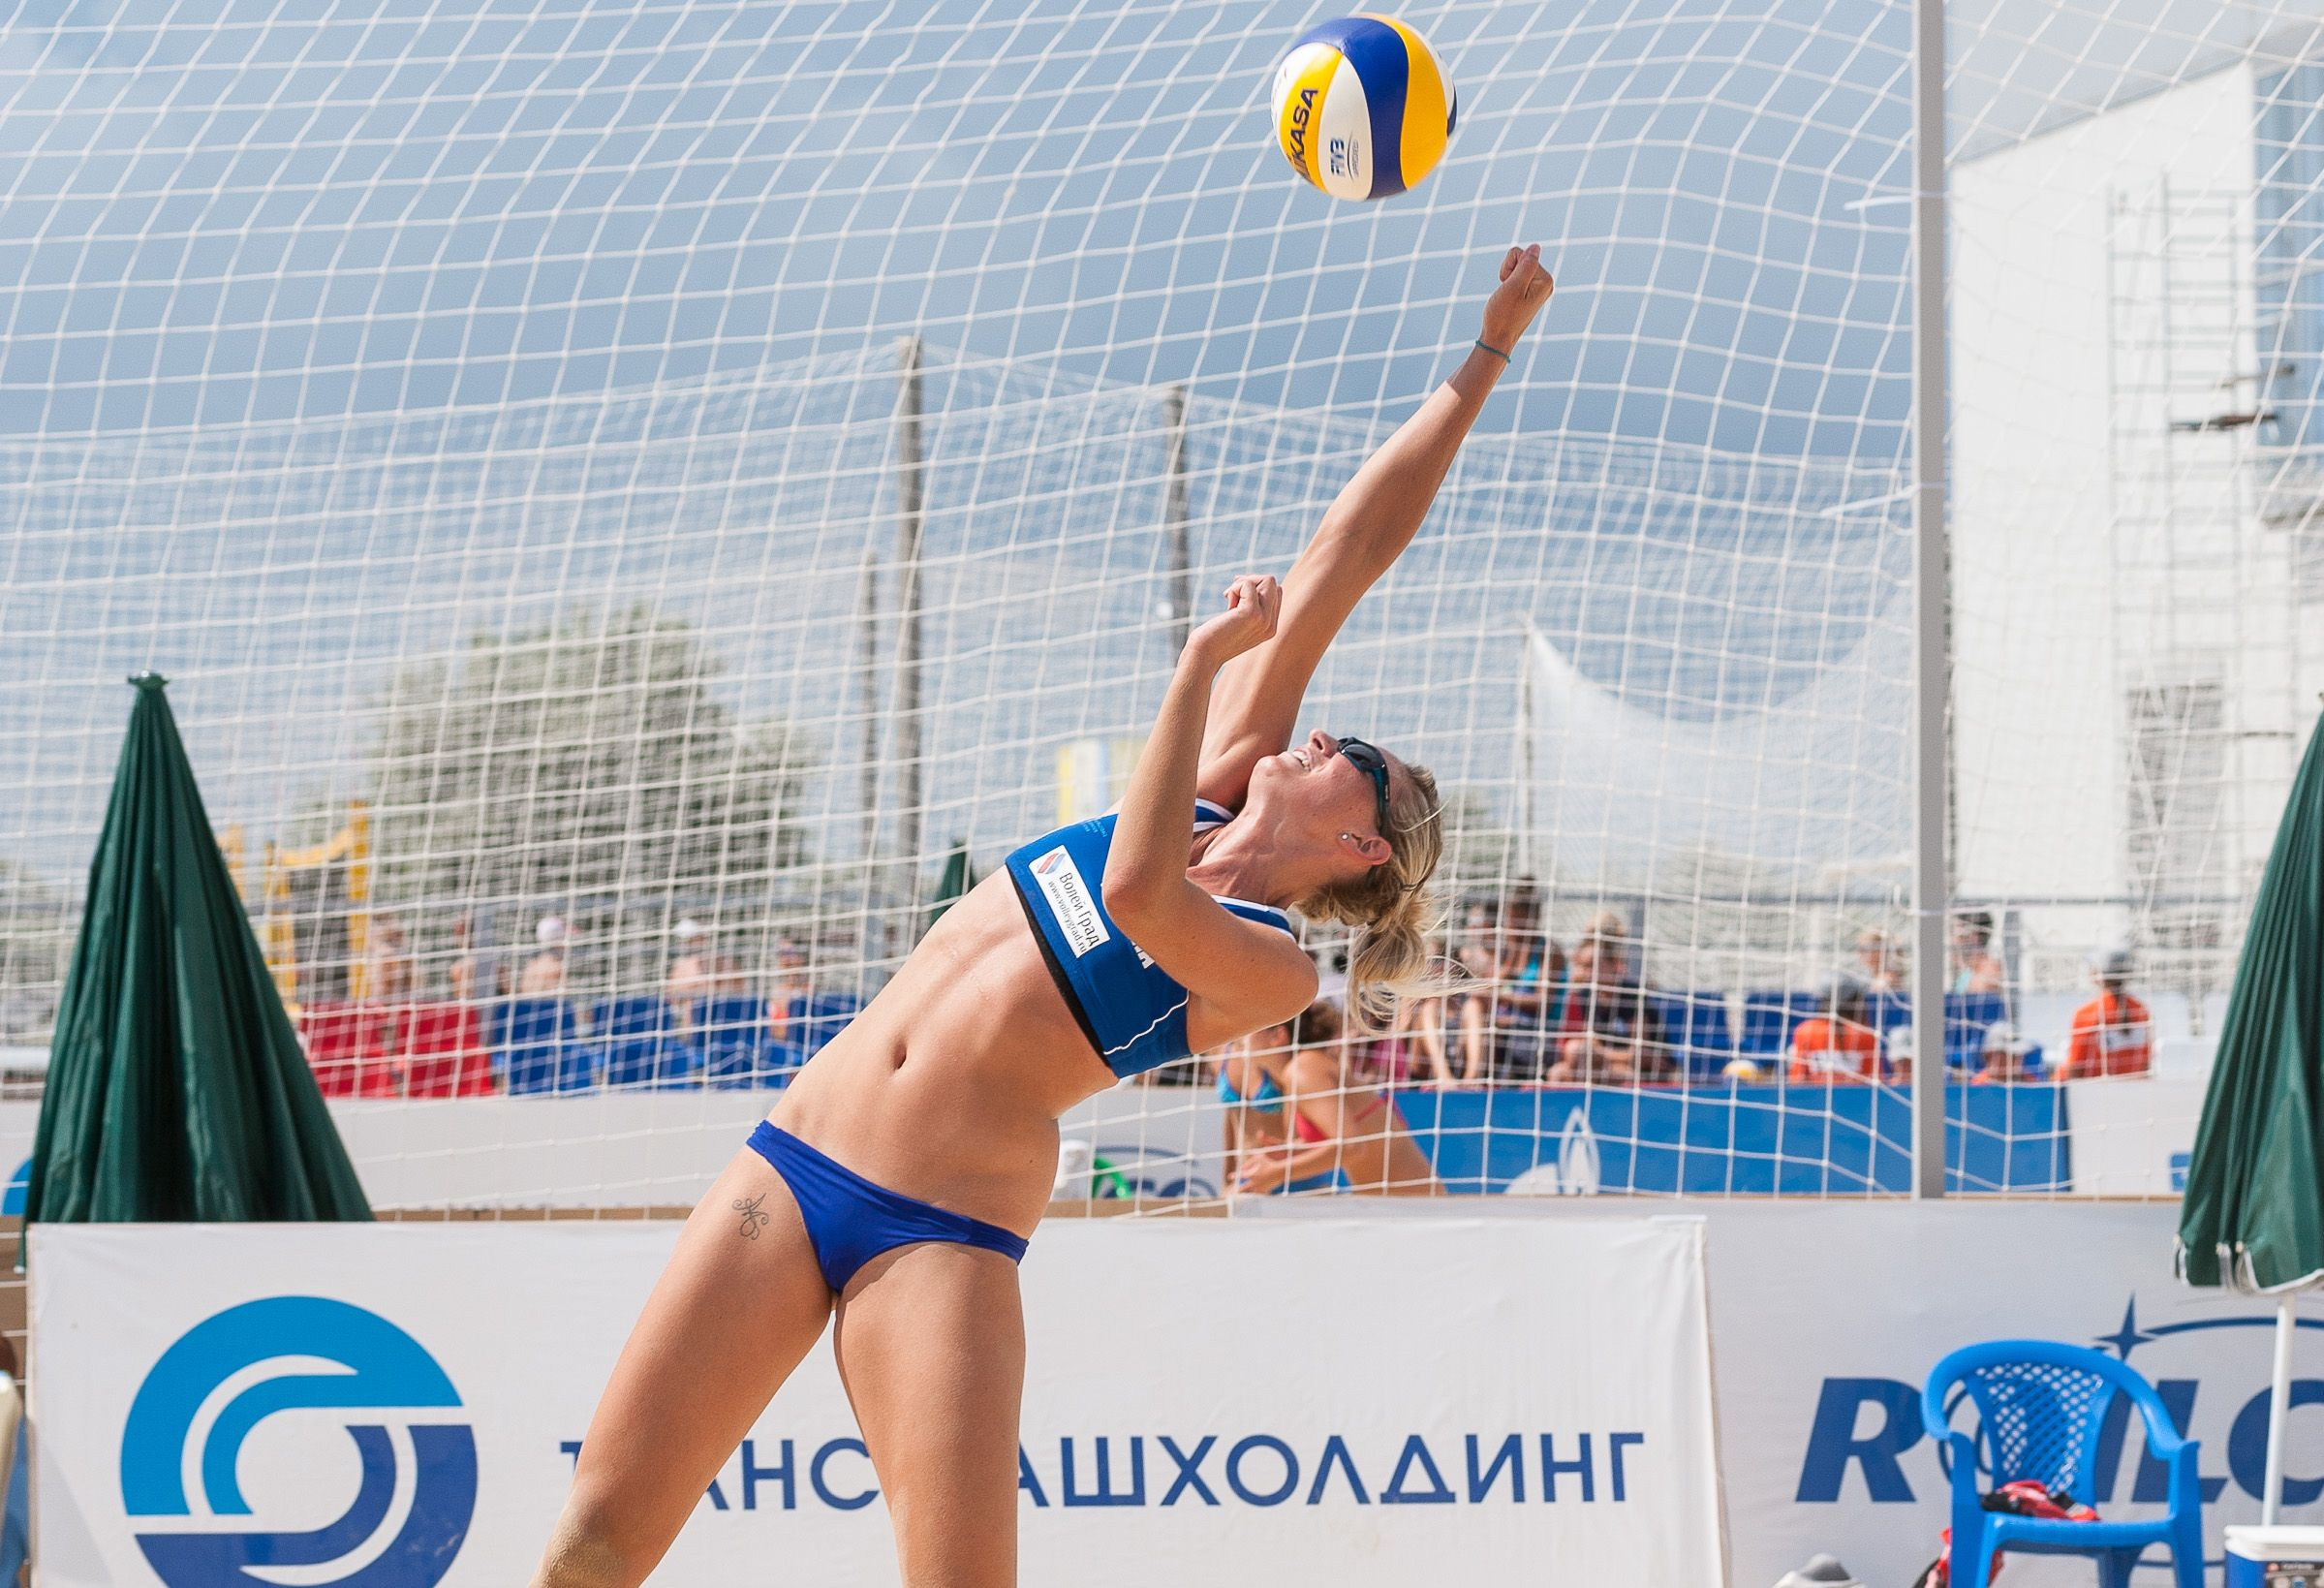 France S Madelin Adelin Reaches For The Ball At Fivb Beach Volleyball Anapa Grand Slam Fivb Beach Volleyball Beach Volleyball Female Volleyball Players